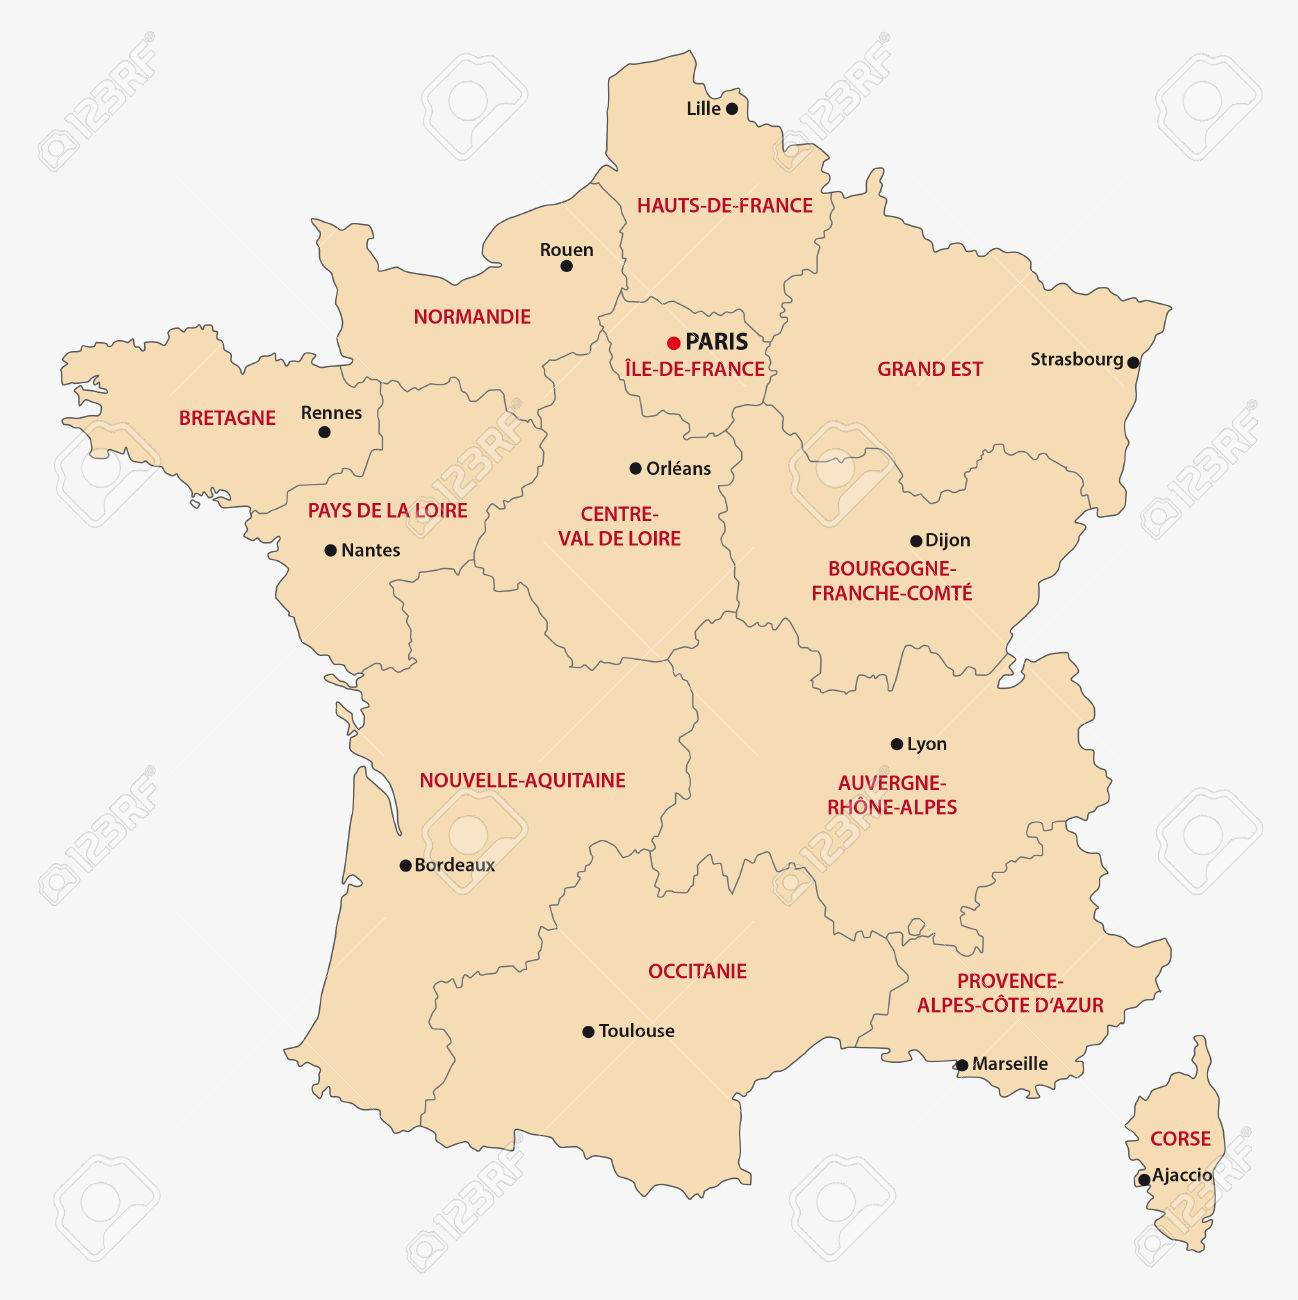 Administrative Map Of The 13 Regions Of France Since 2016 dedans Carte Des Régions De France 2016